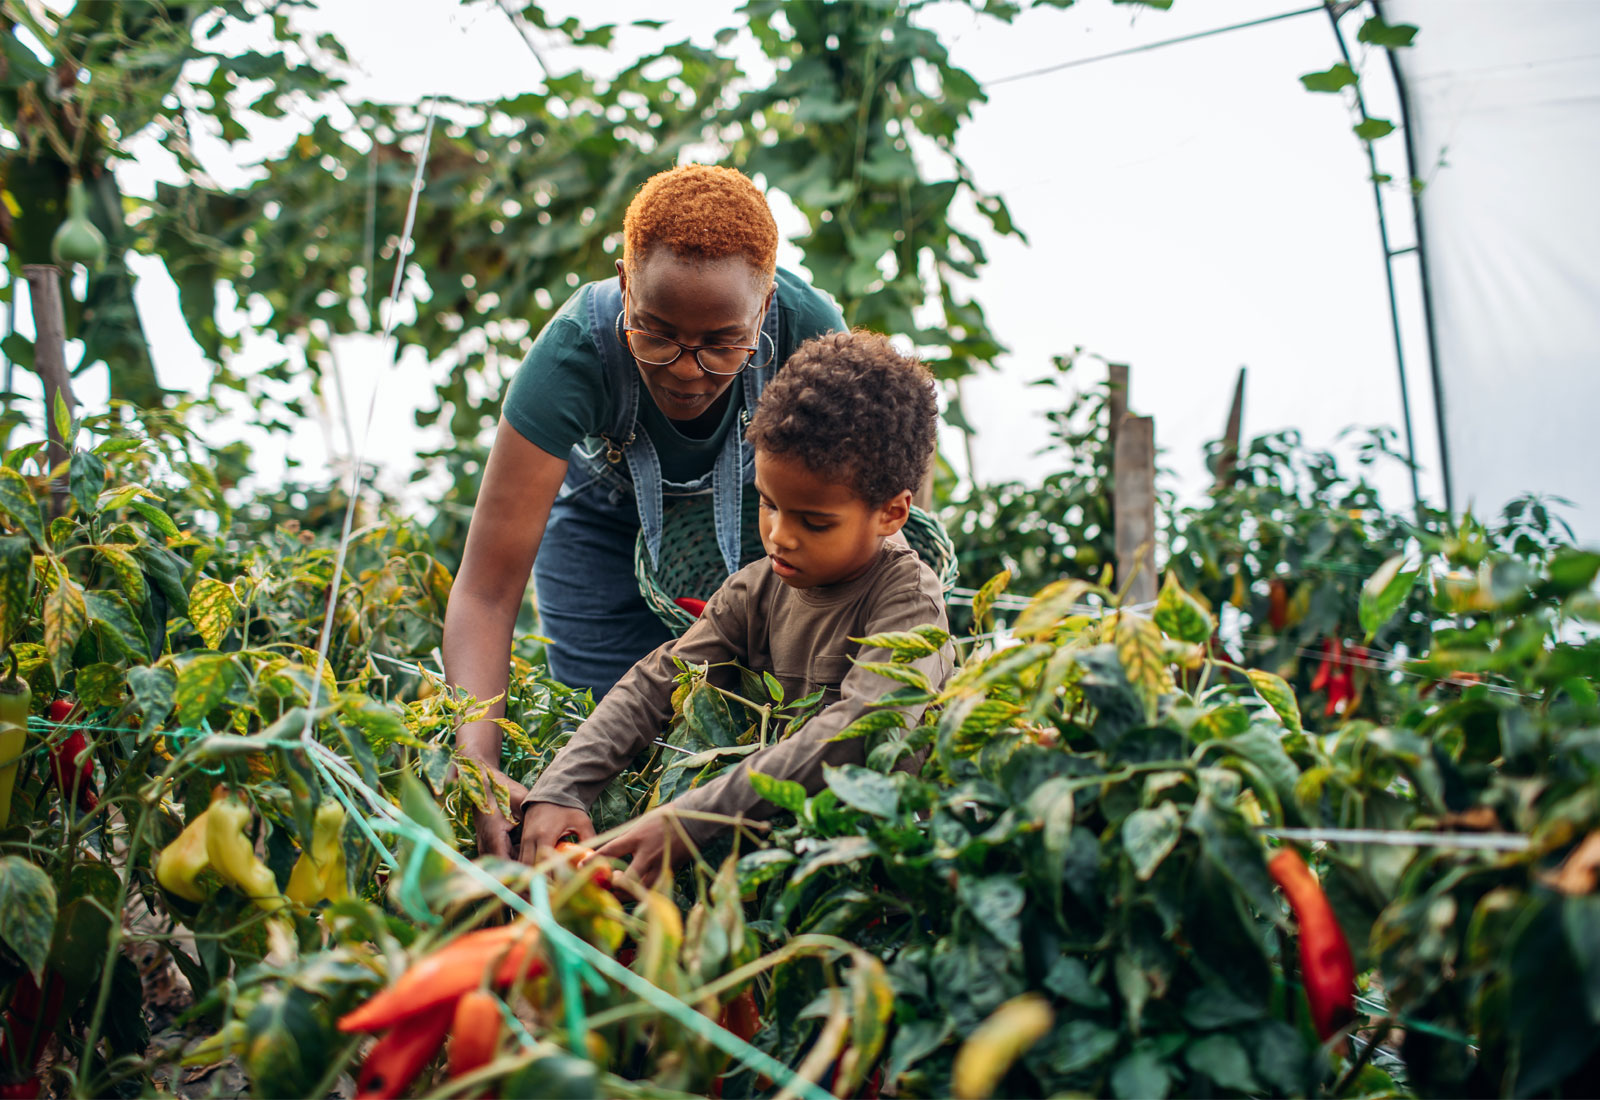 A woman and young boy harvesting peppers in a garden